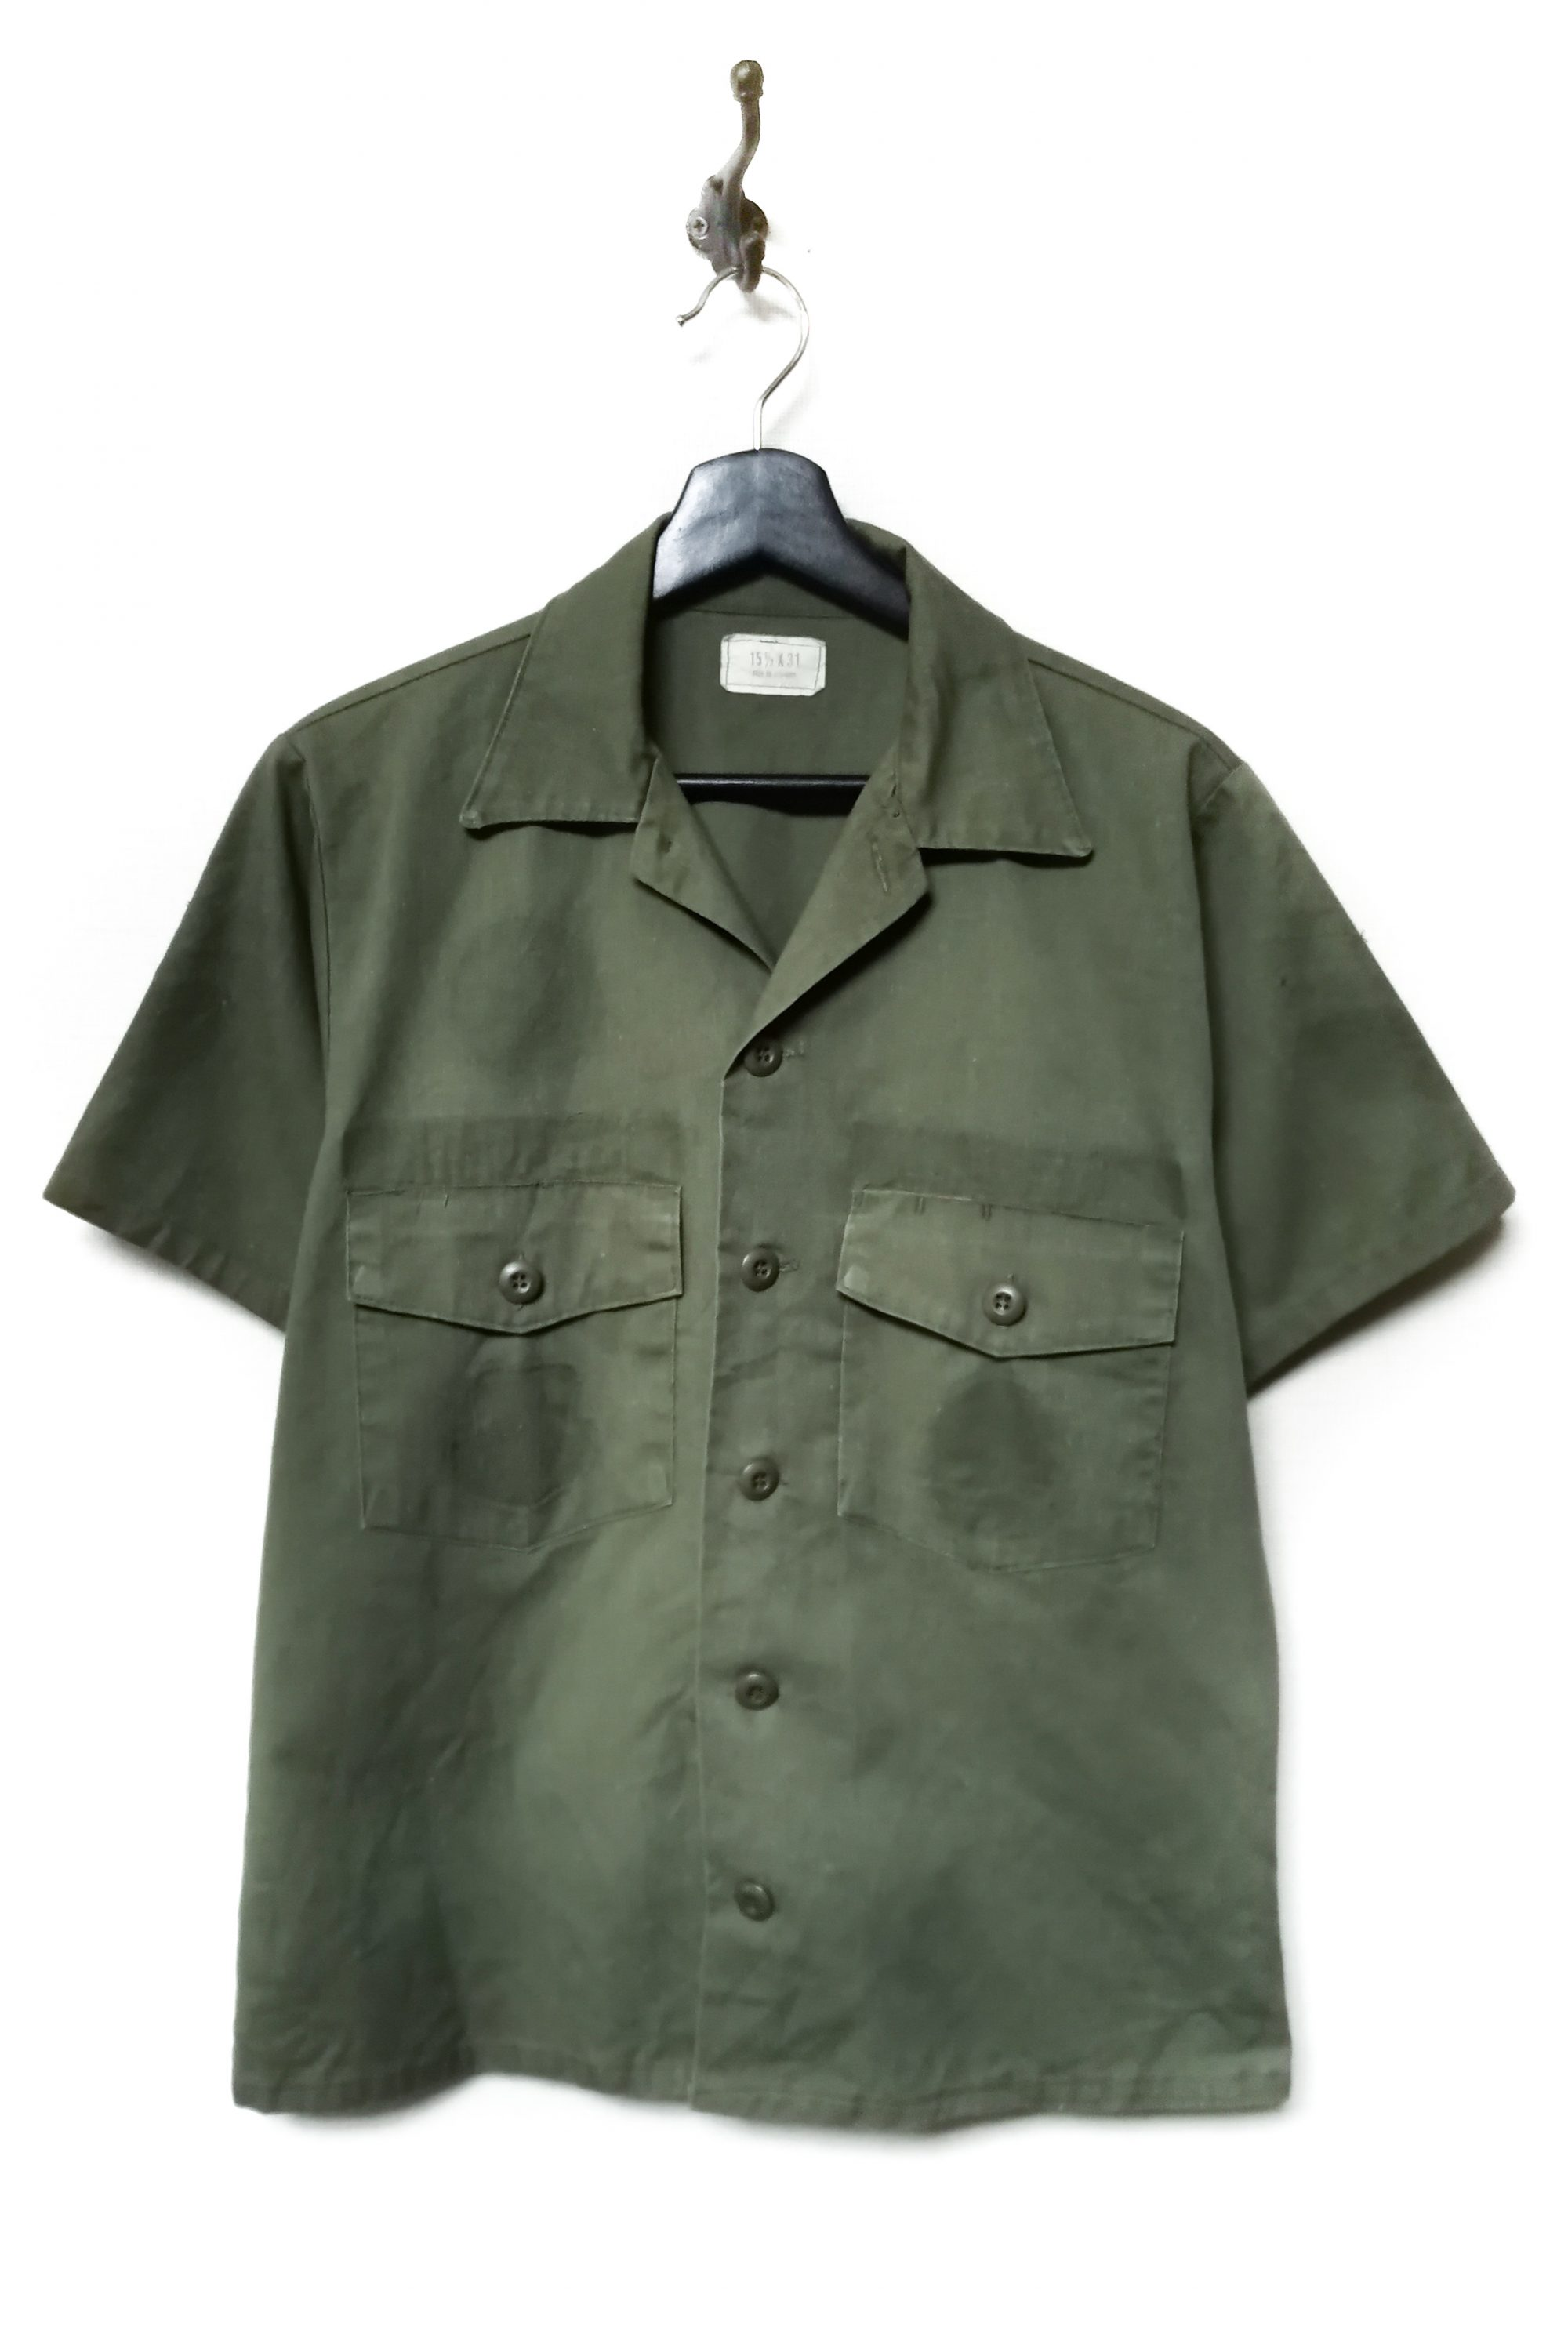 US Military Utility Short Sleeve Shirt